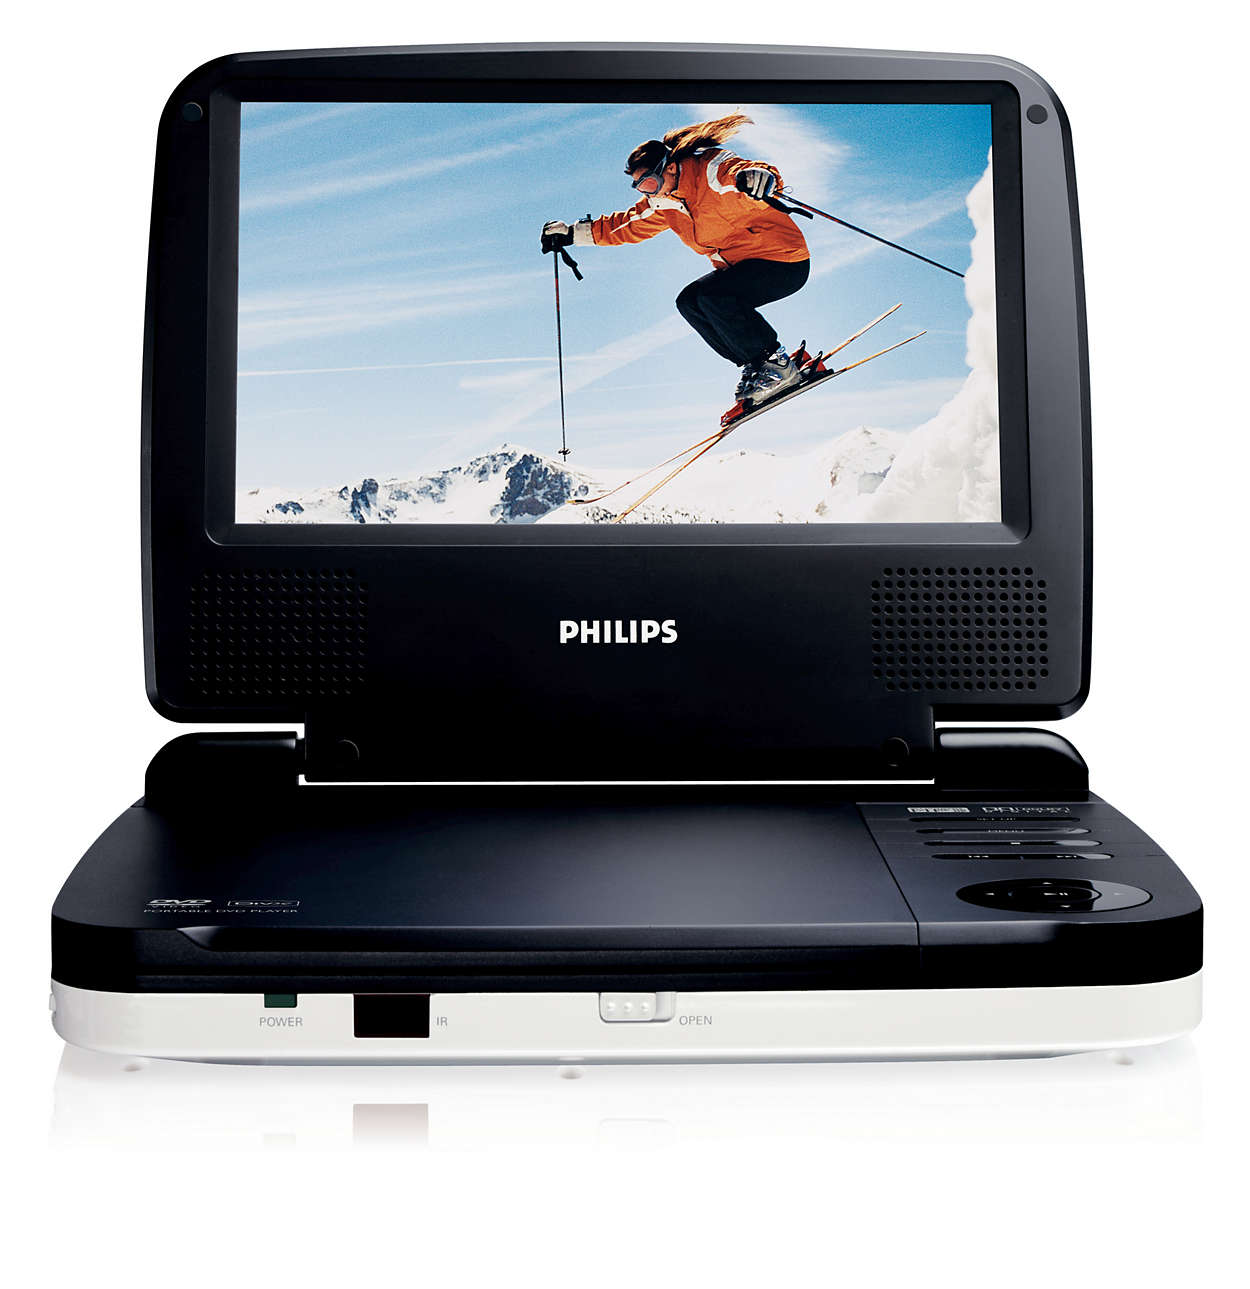 lecteur de dvd portable pet716 12 philips. Black Bedroom Furniture Sets. Home Design Ideas